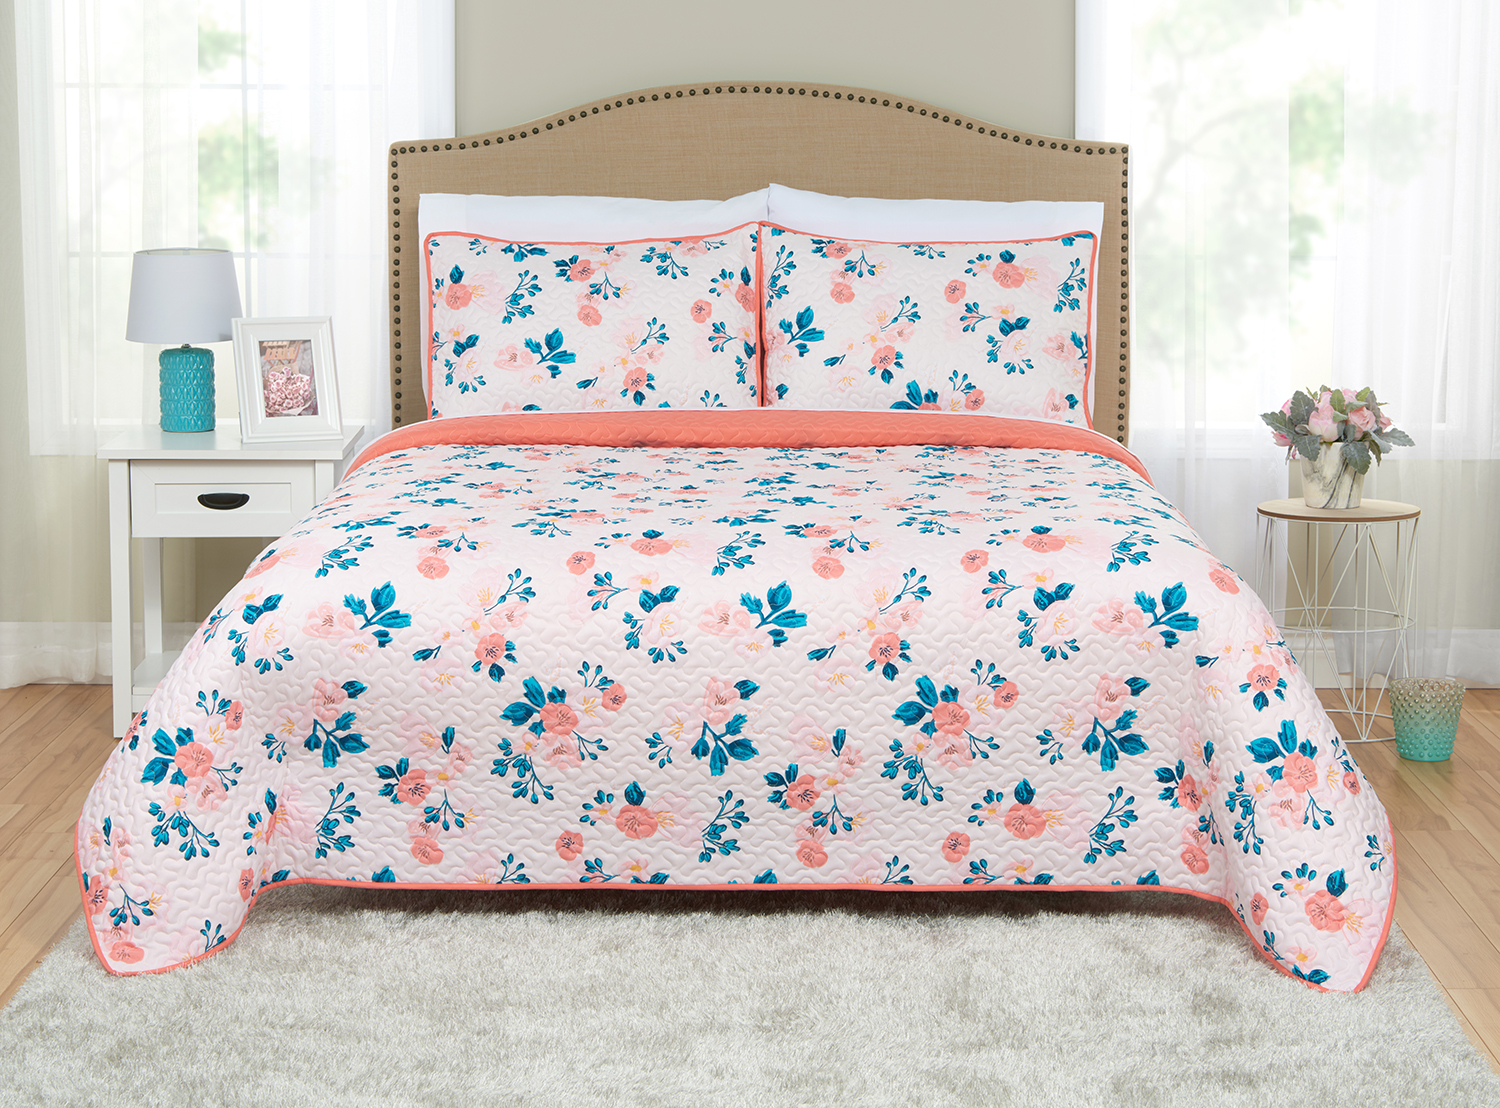 Better Homes and Gardens Blush Floral Quilt & Sham Set by Beco Industries